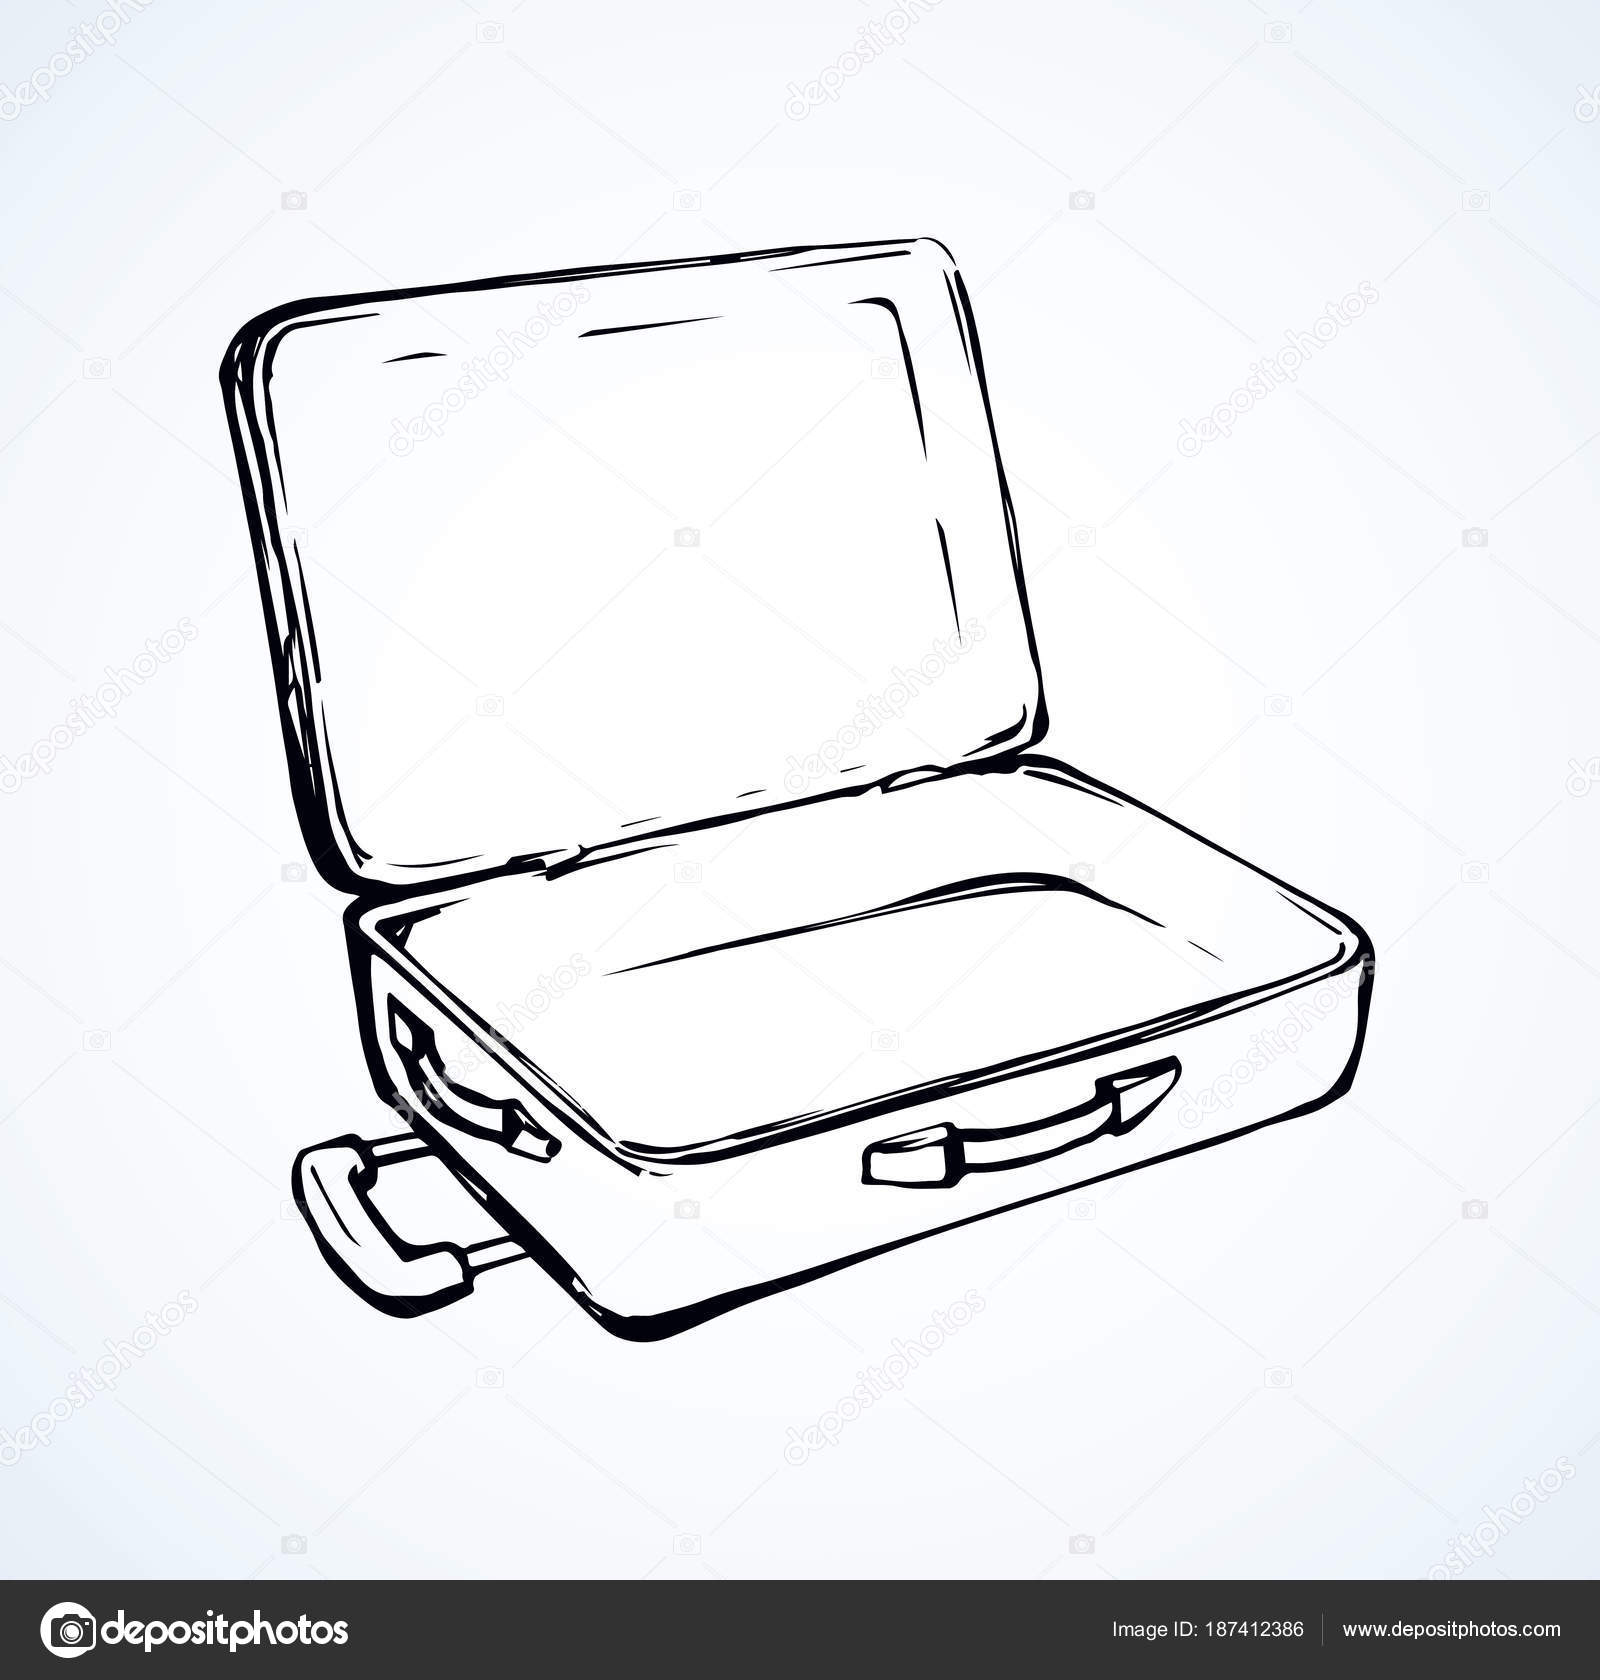 Drawing suitcase